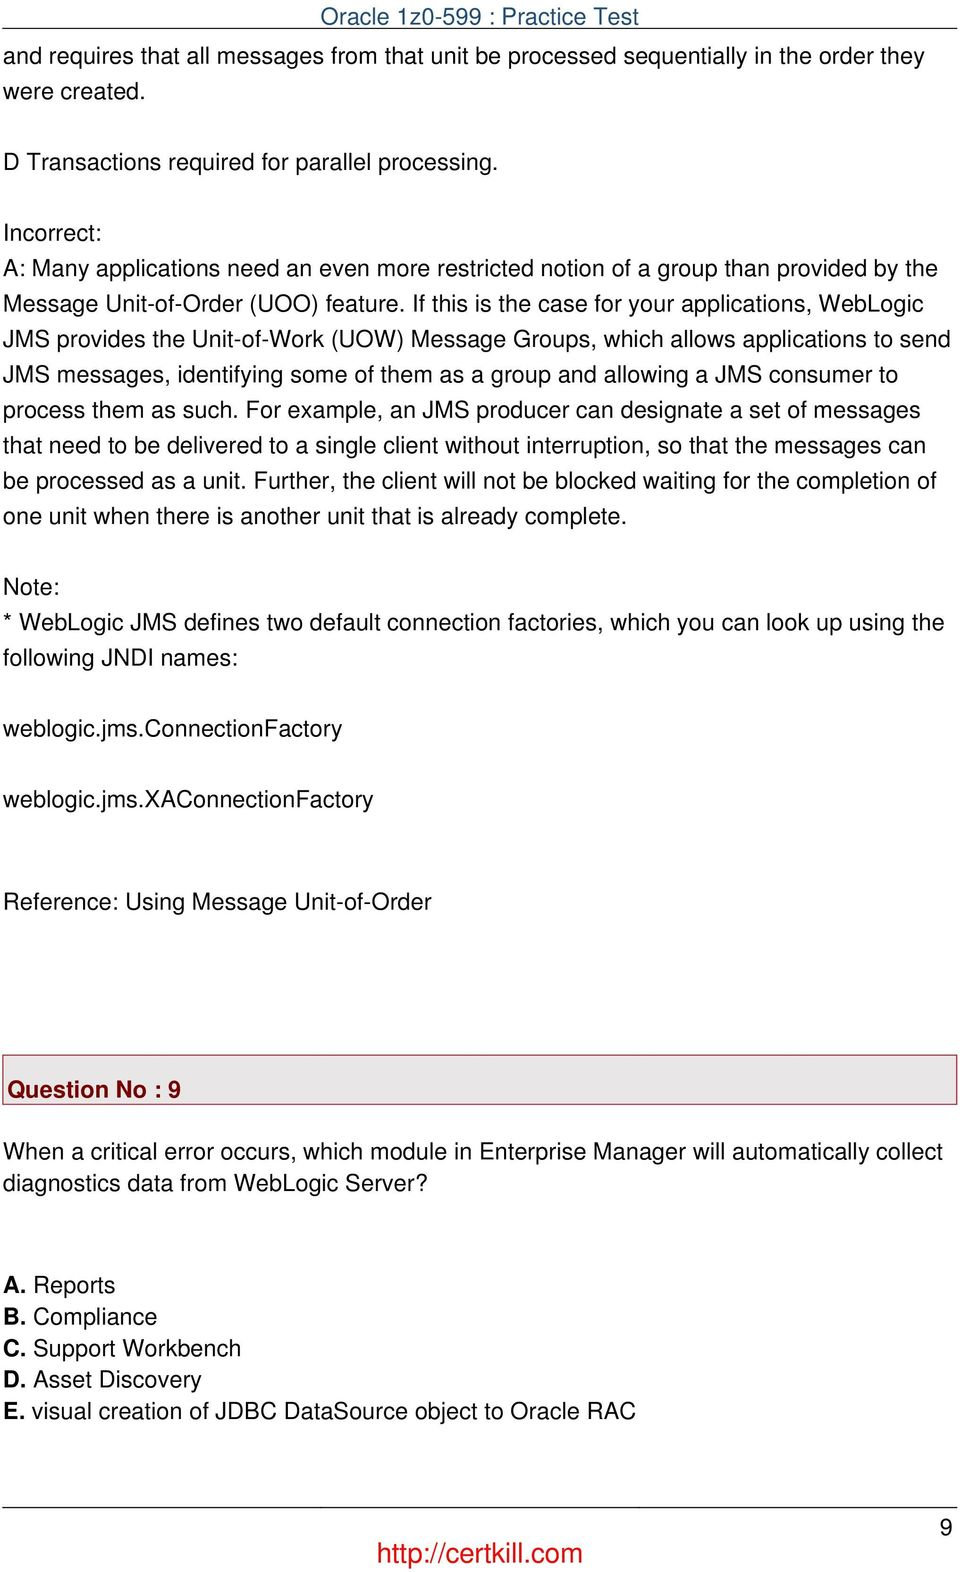 If this is the case for your applications, WebLogic JMS provides the Unit-of-Work (UOW) Message Groups, which allows applications to send JMS messages, identifying some of them as a group and